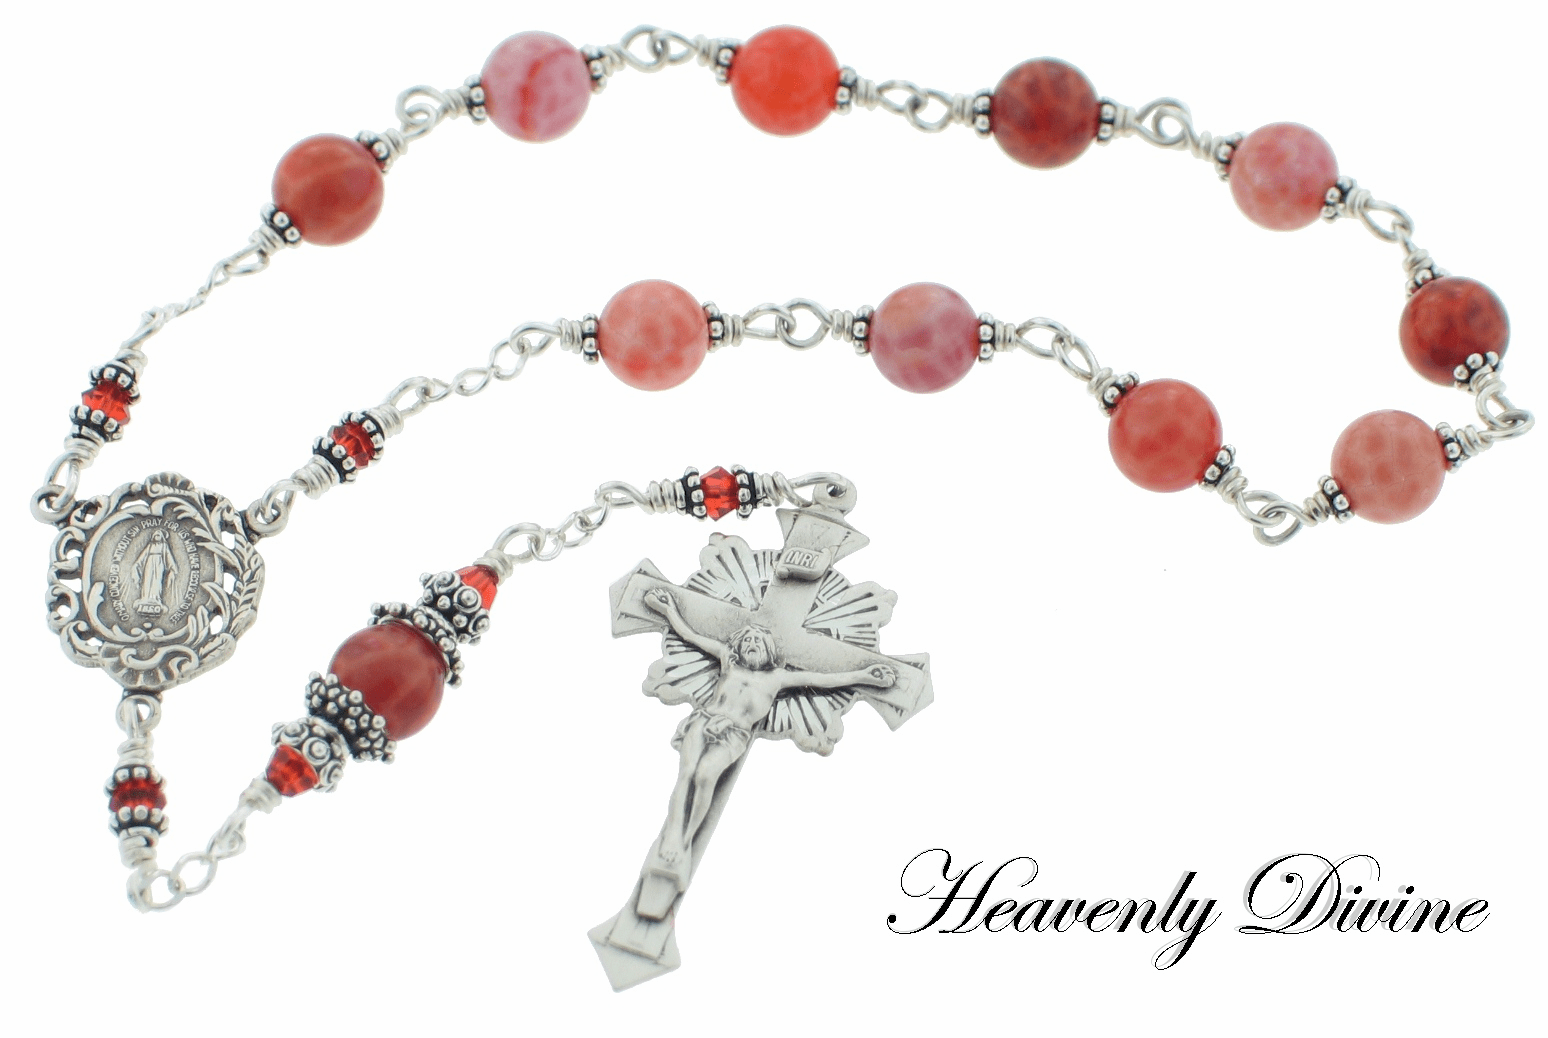 Handmade Fire Agate One-Decade Wire-Wrapped Rosary by Heavenly Divine